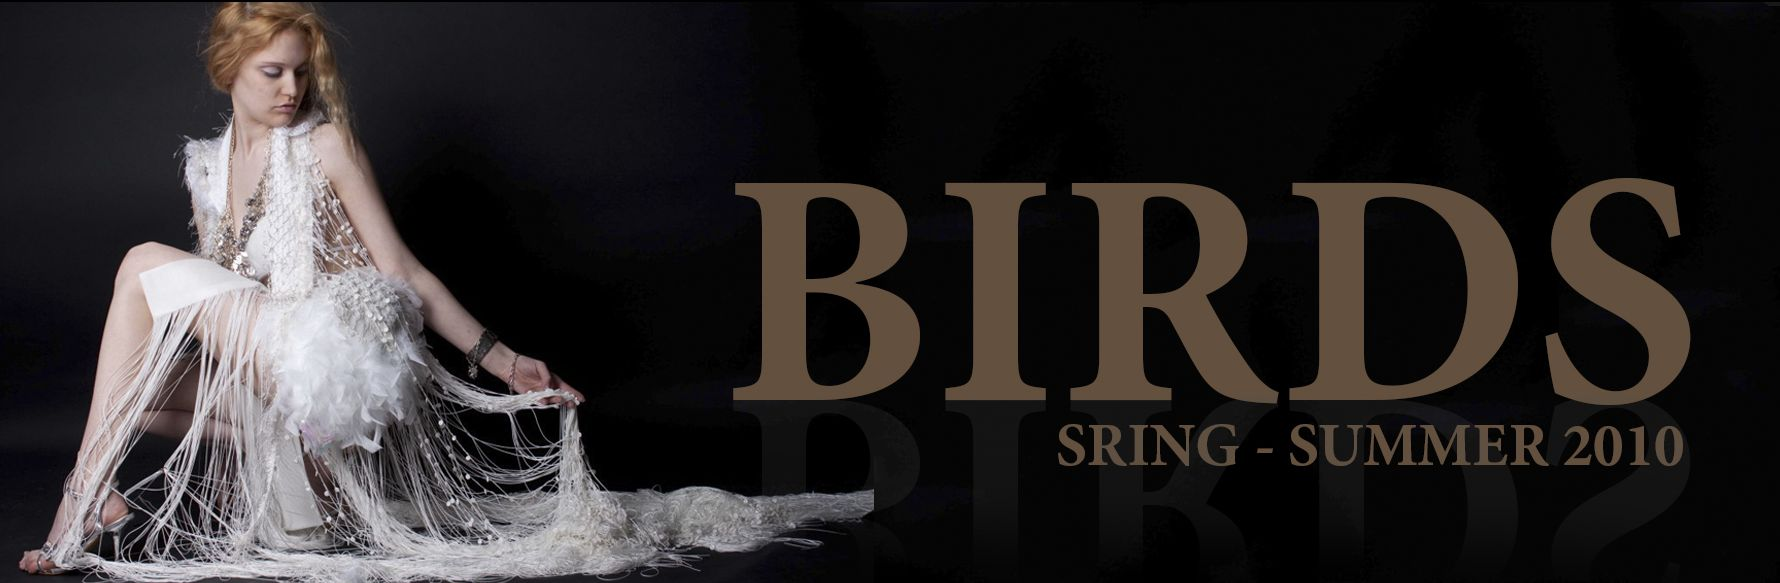 SRING – SUMMER 2010: BIRDS